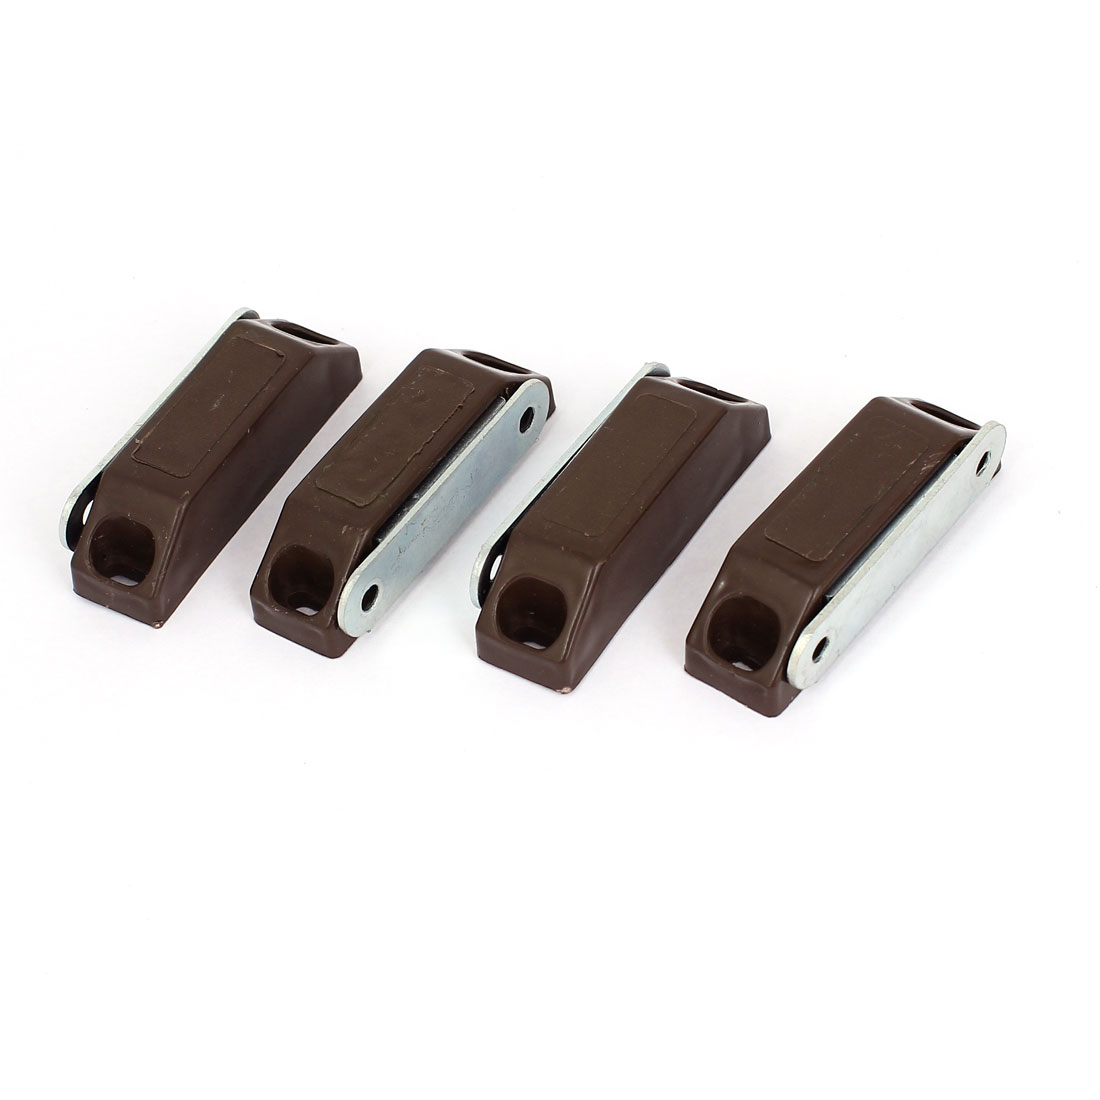 Home Office Metal Rectangle Door Magnetic Holder Brown 6cm Long 4Pcs